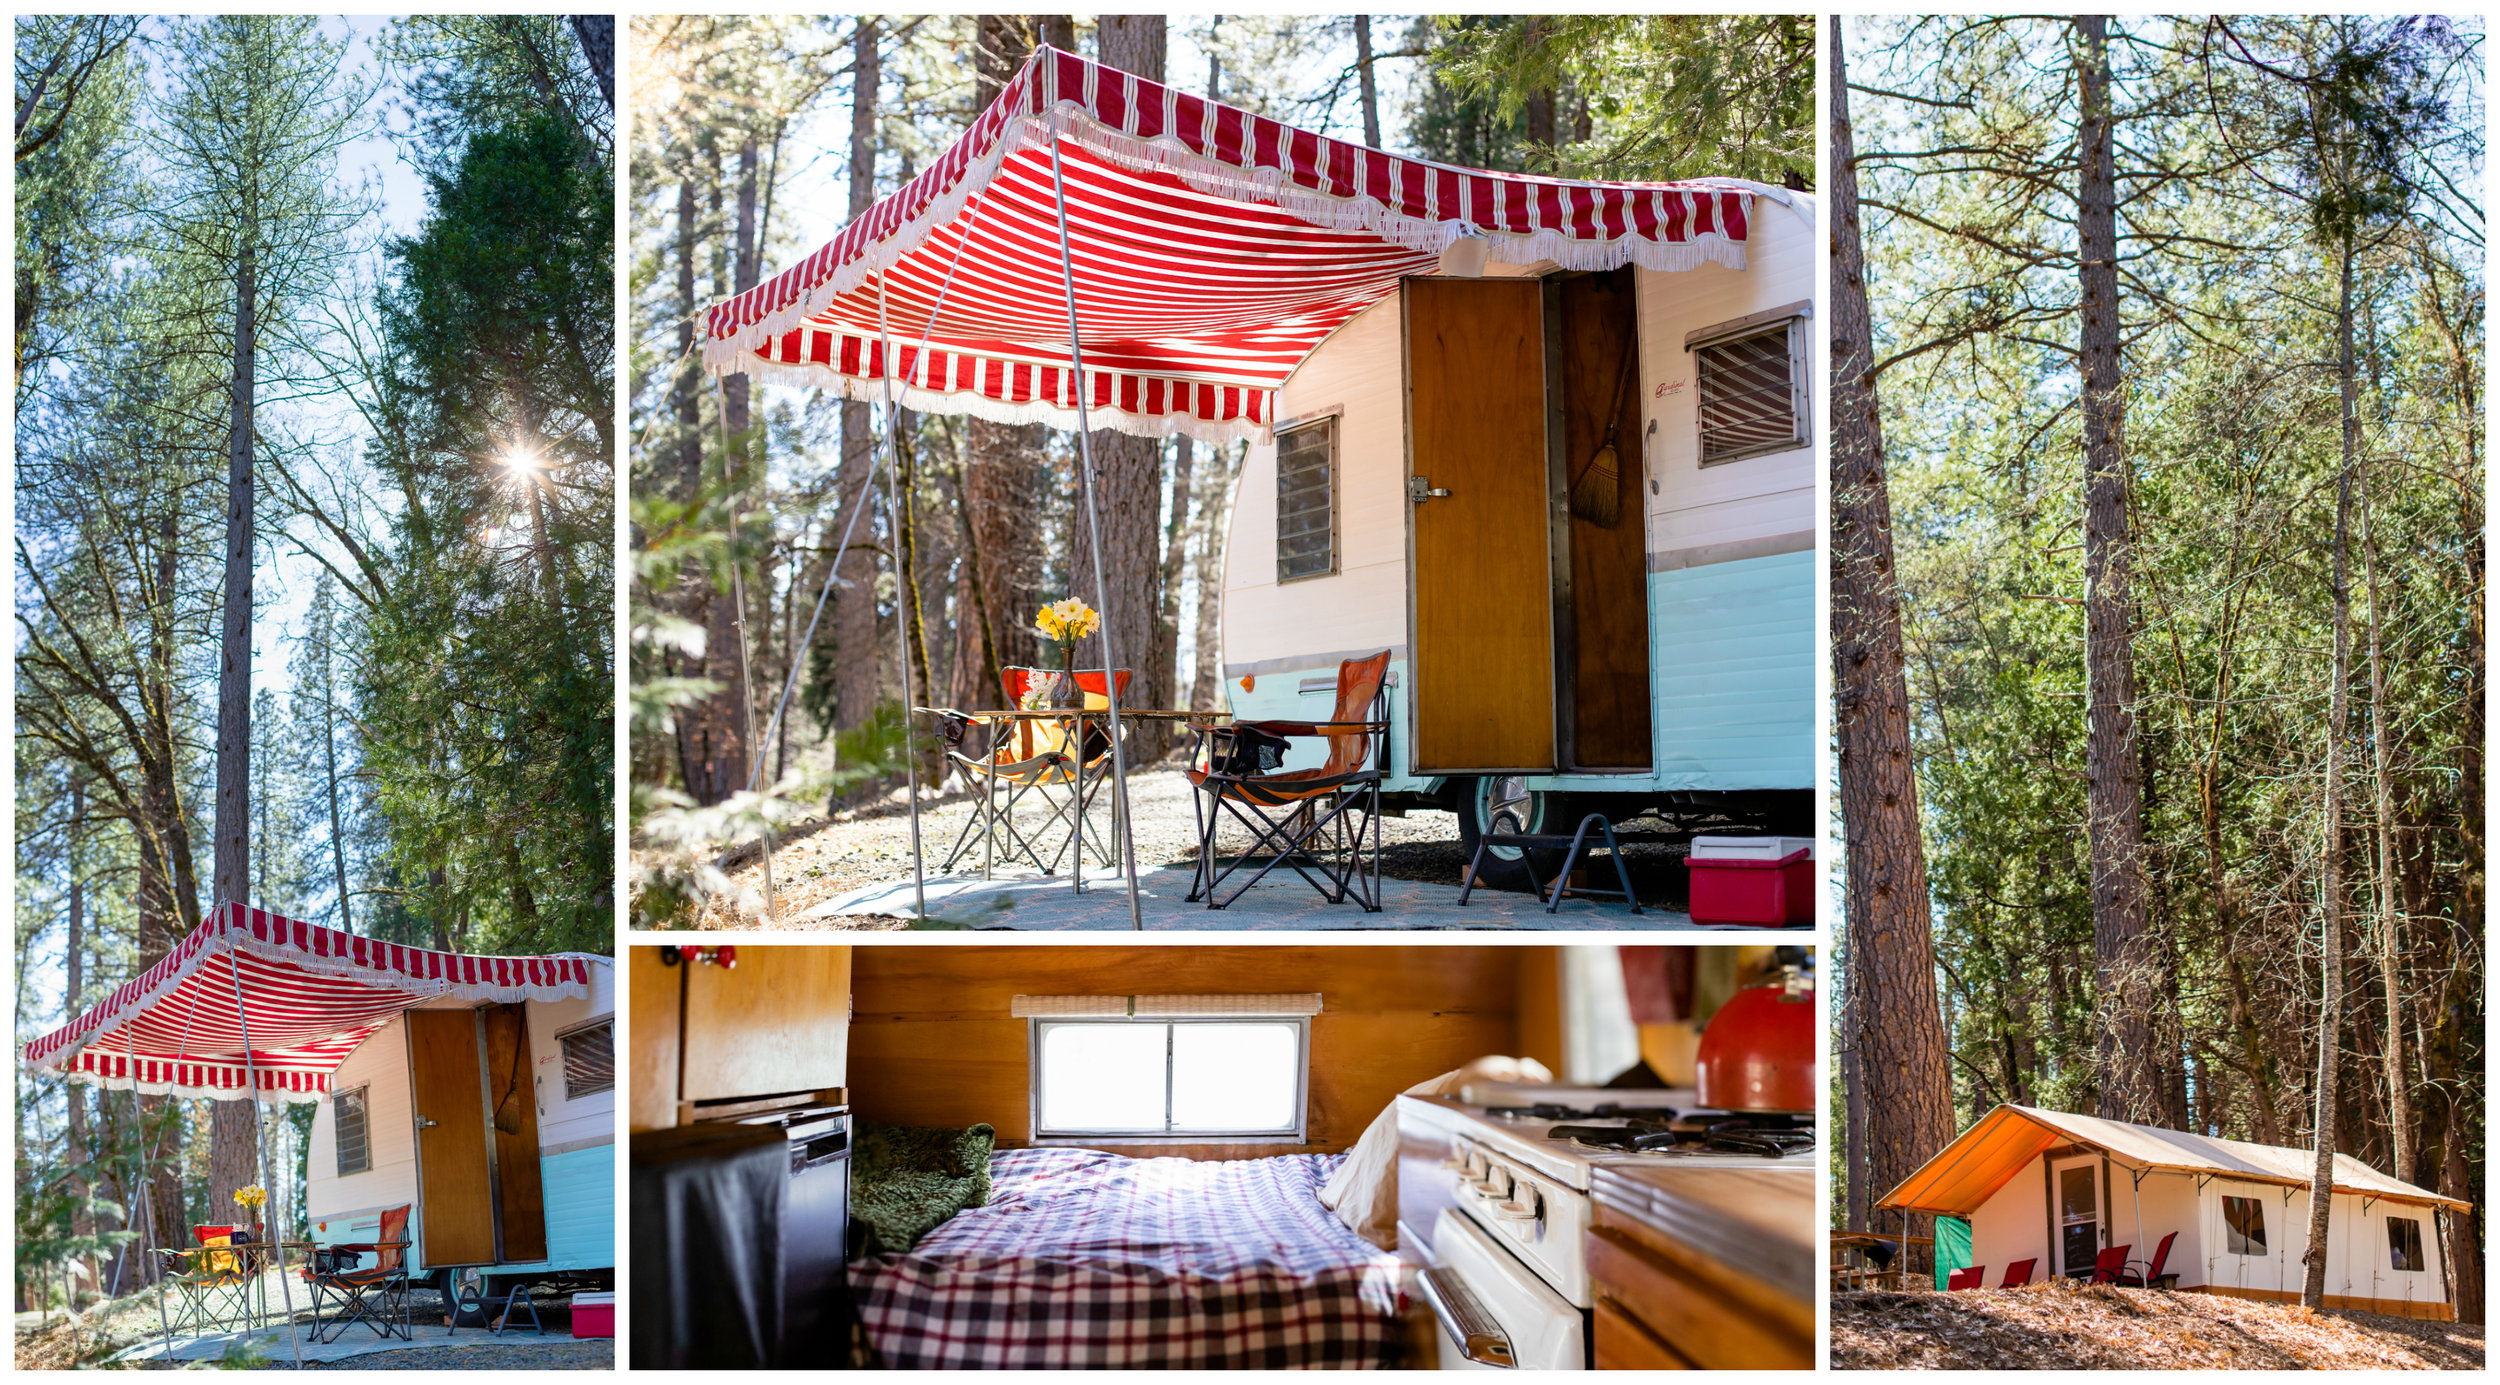 Inn Town Campground Vintage Camper | Lenkaland Photography